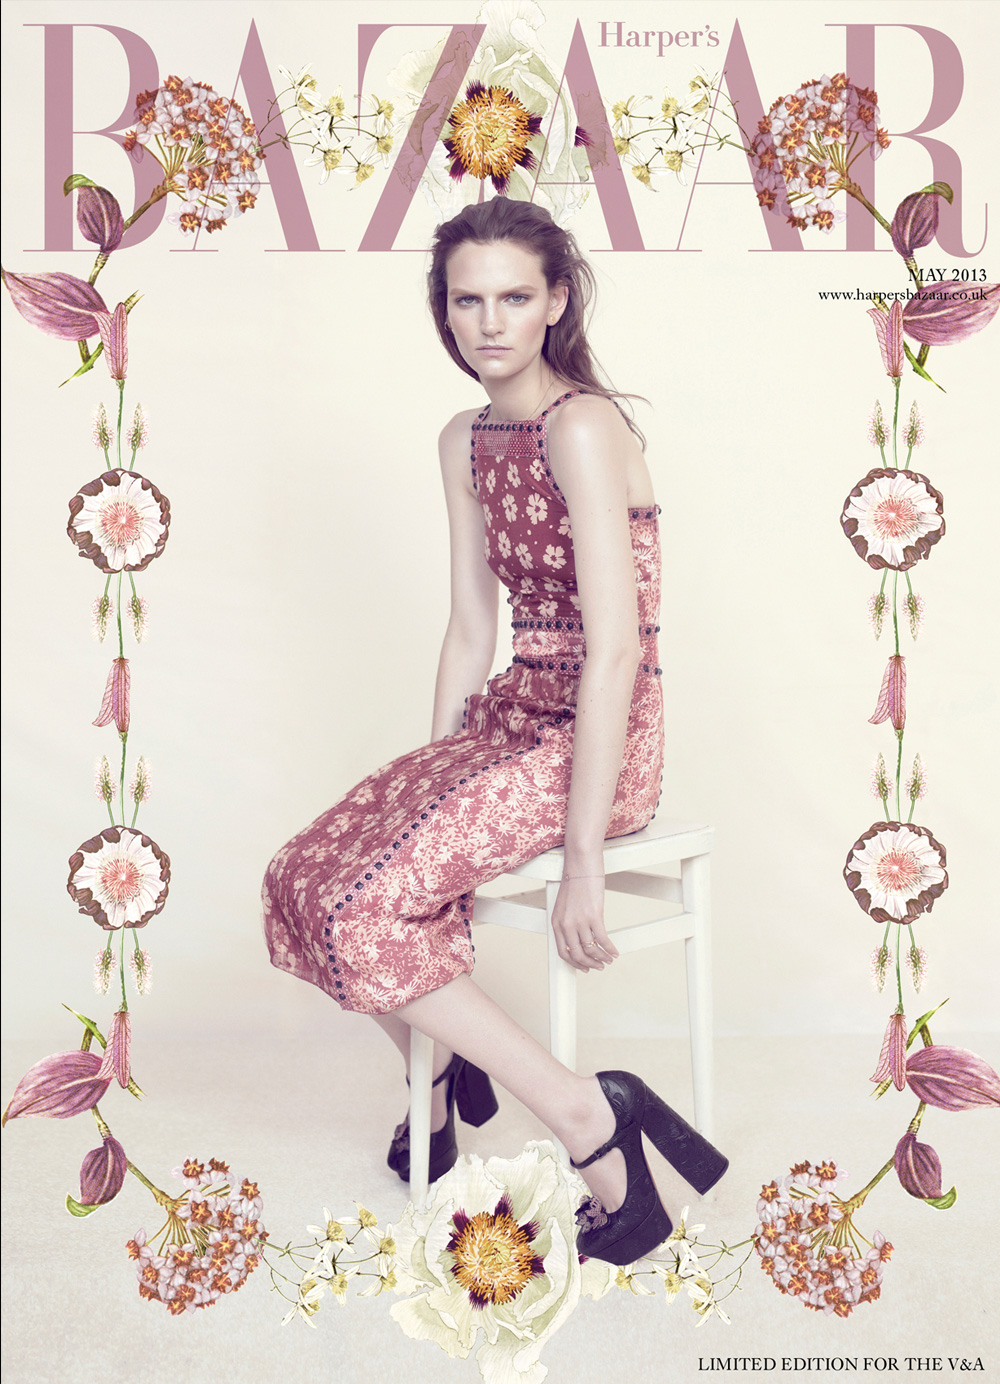 harpers-bazaar-v-and-a-covers-05